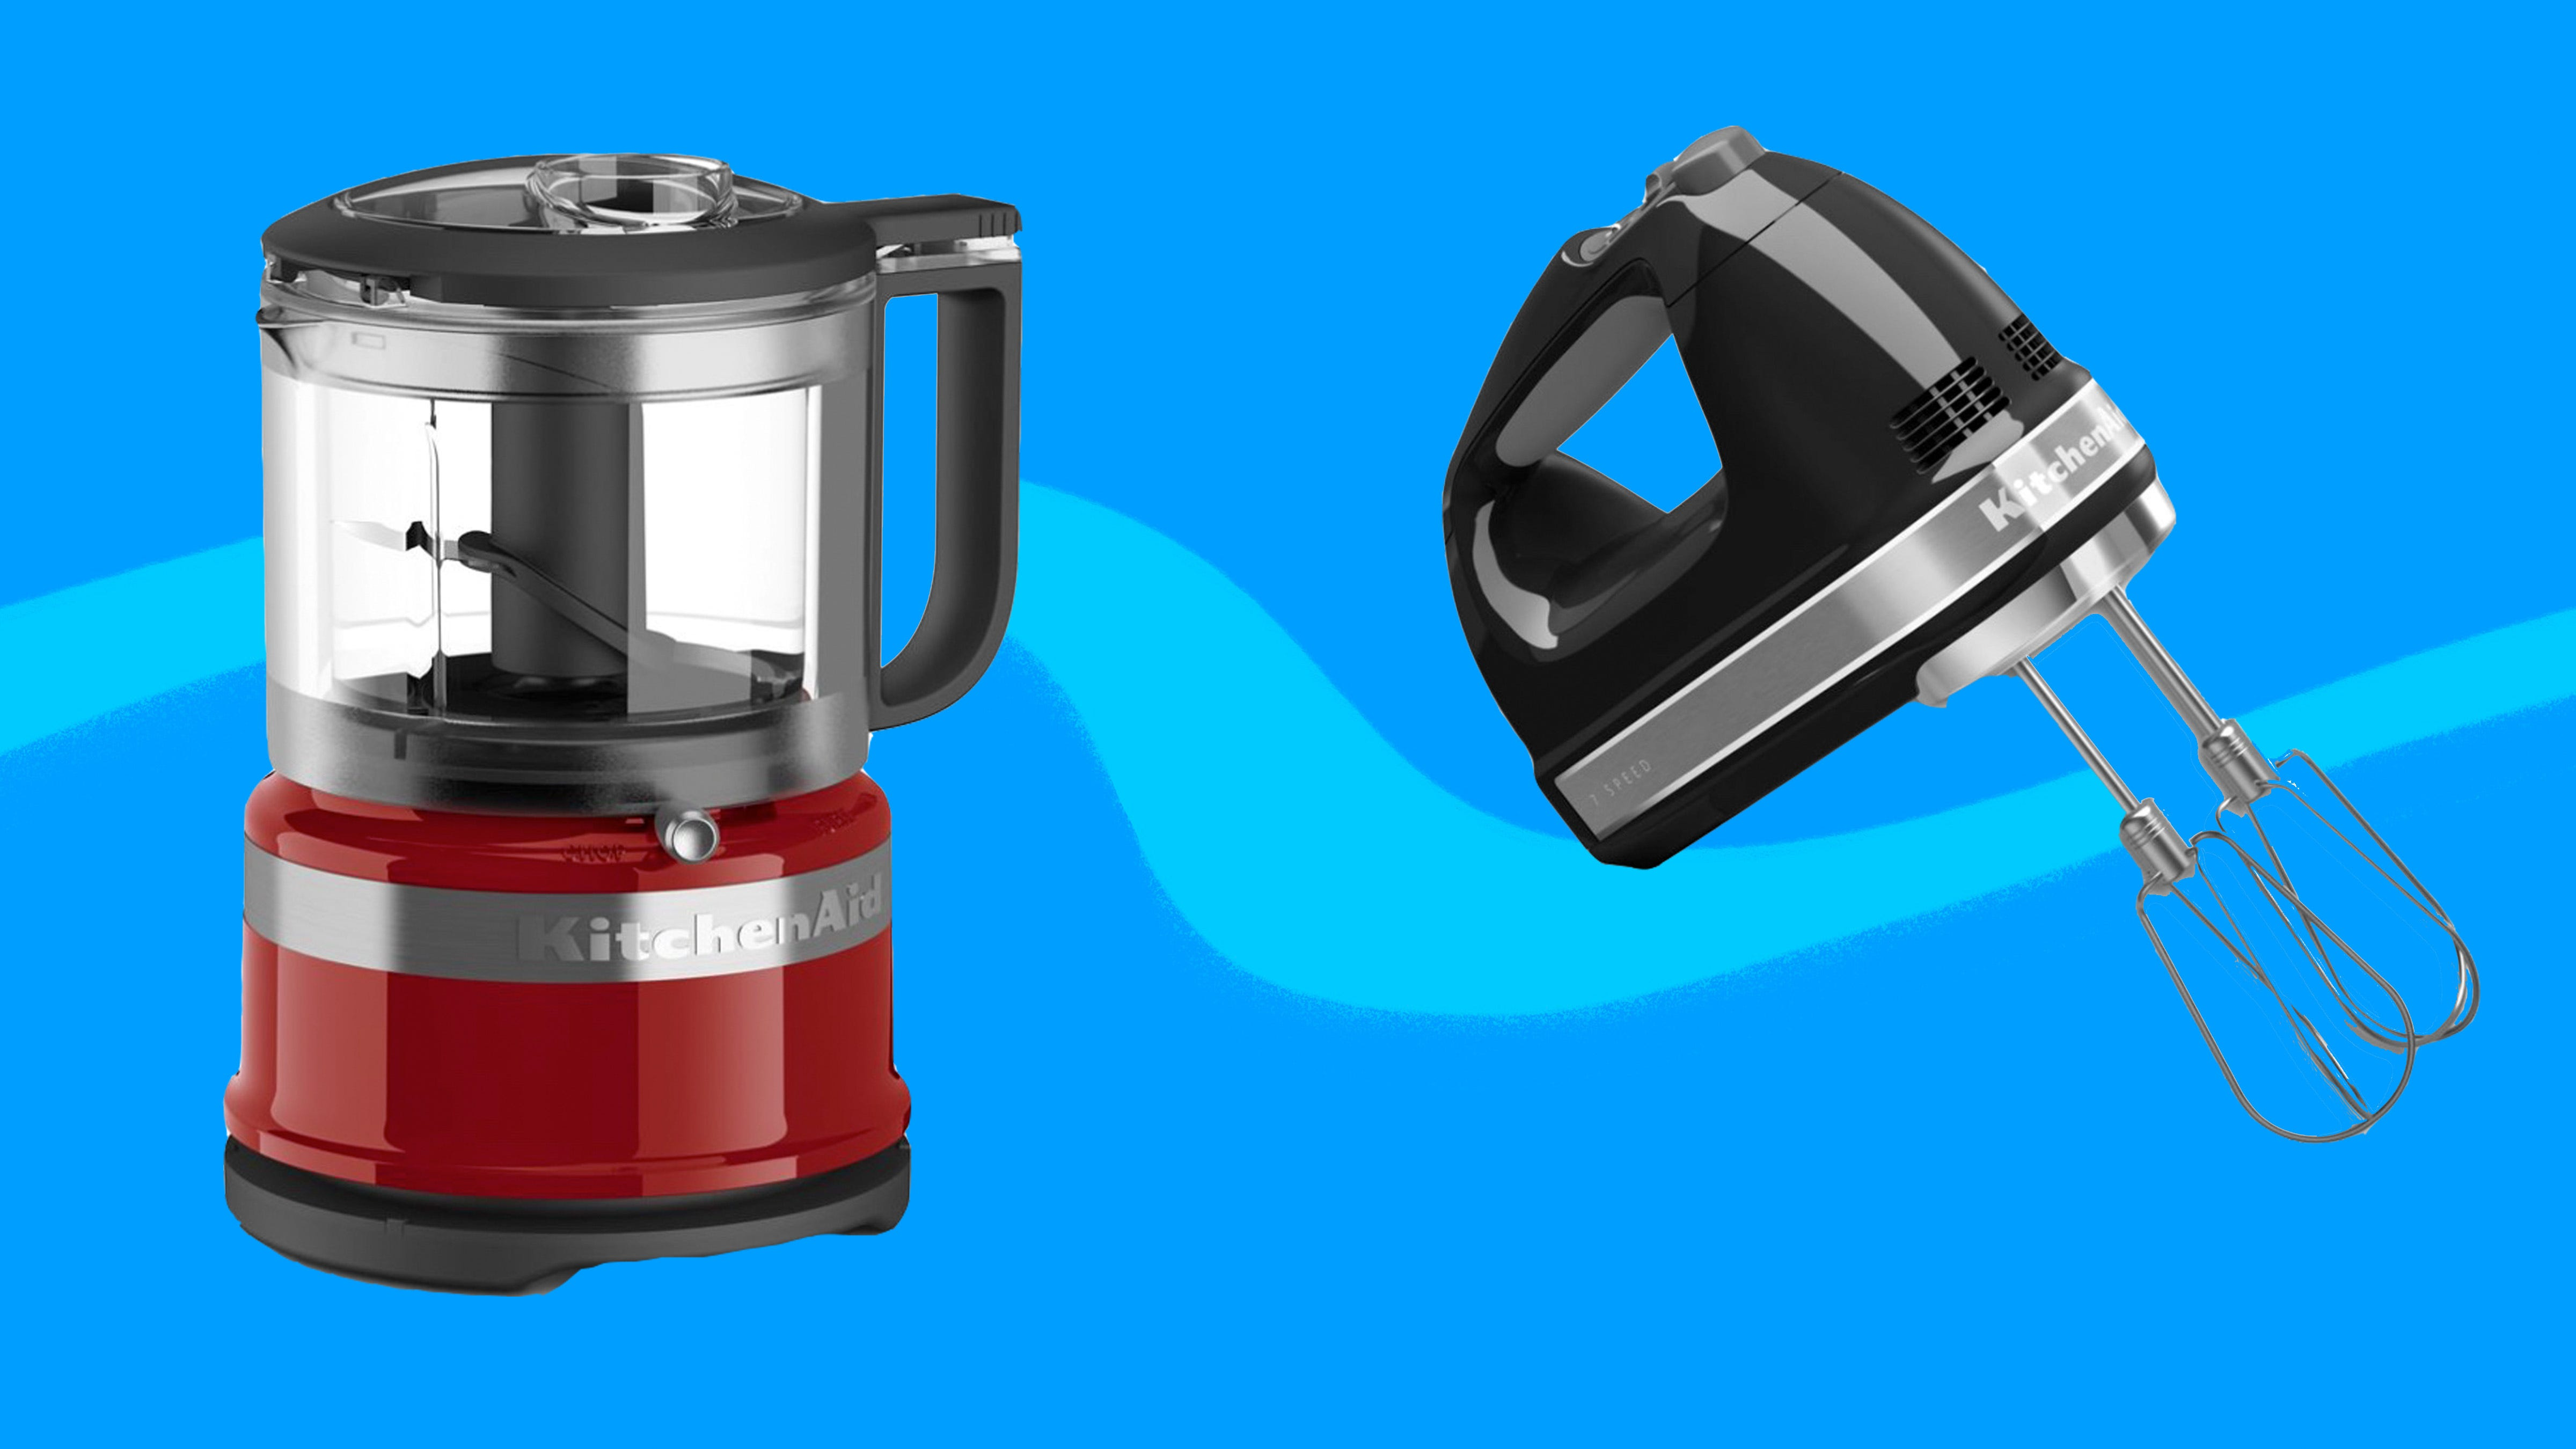 Save big on KitchenAid stand mixer attachments and much more right now